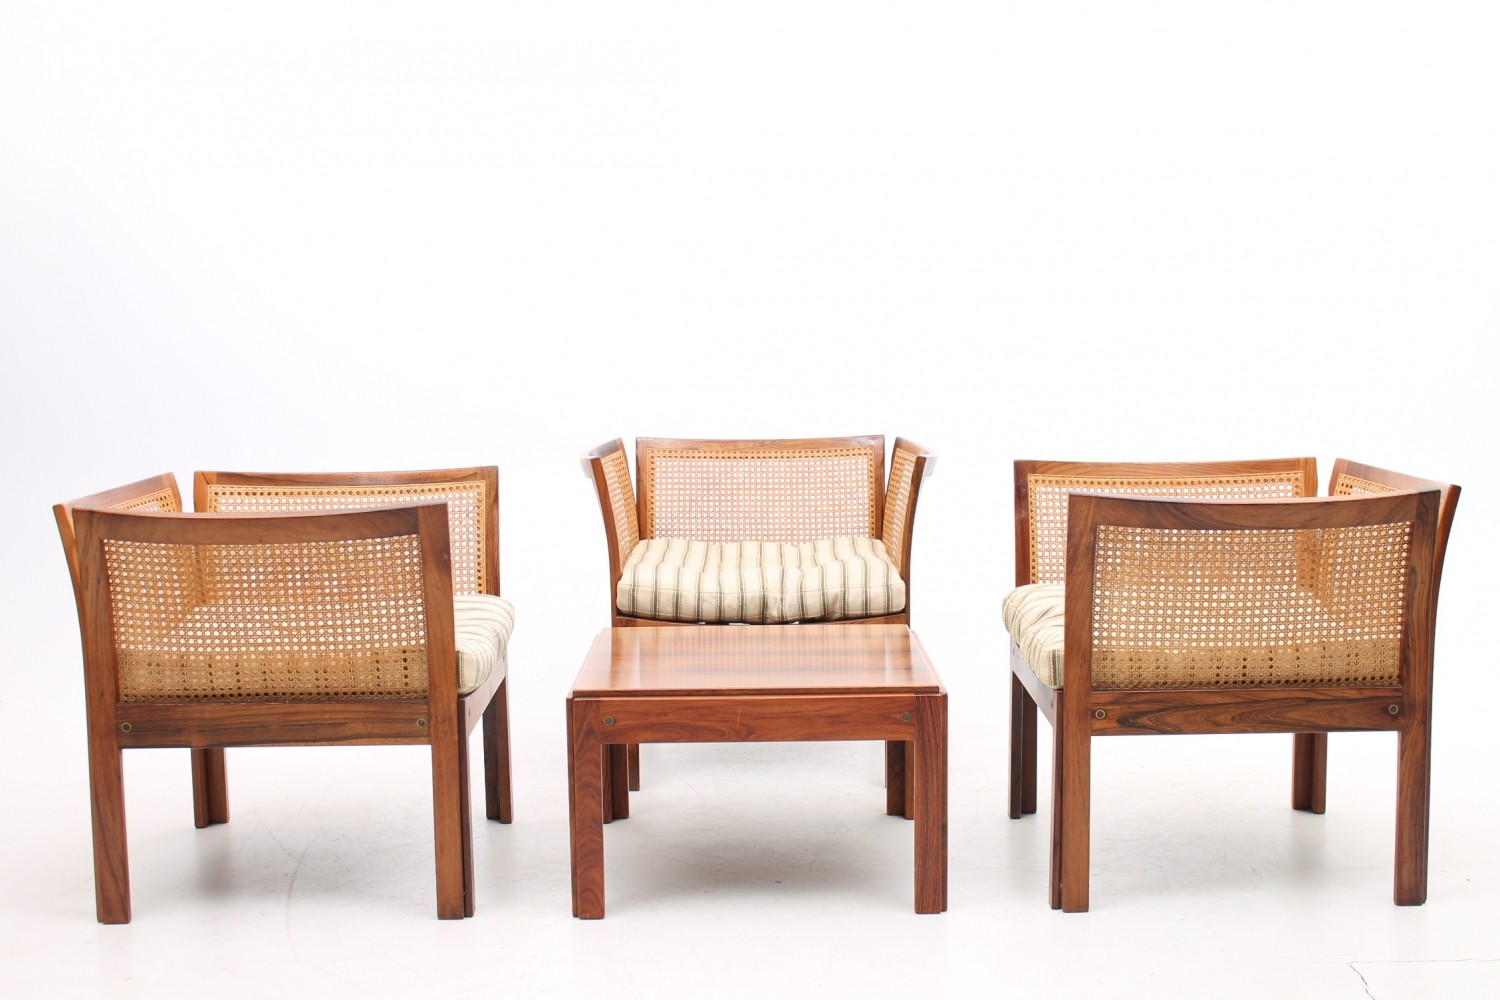 Seating Group from the sixties by Illum Wikkelsø for CFC Silkeborg